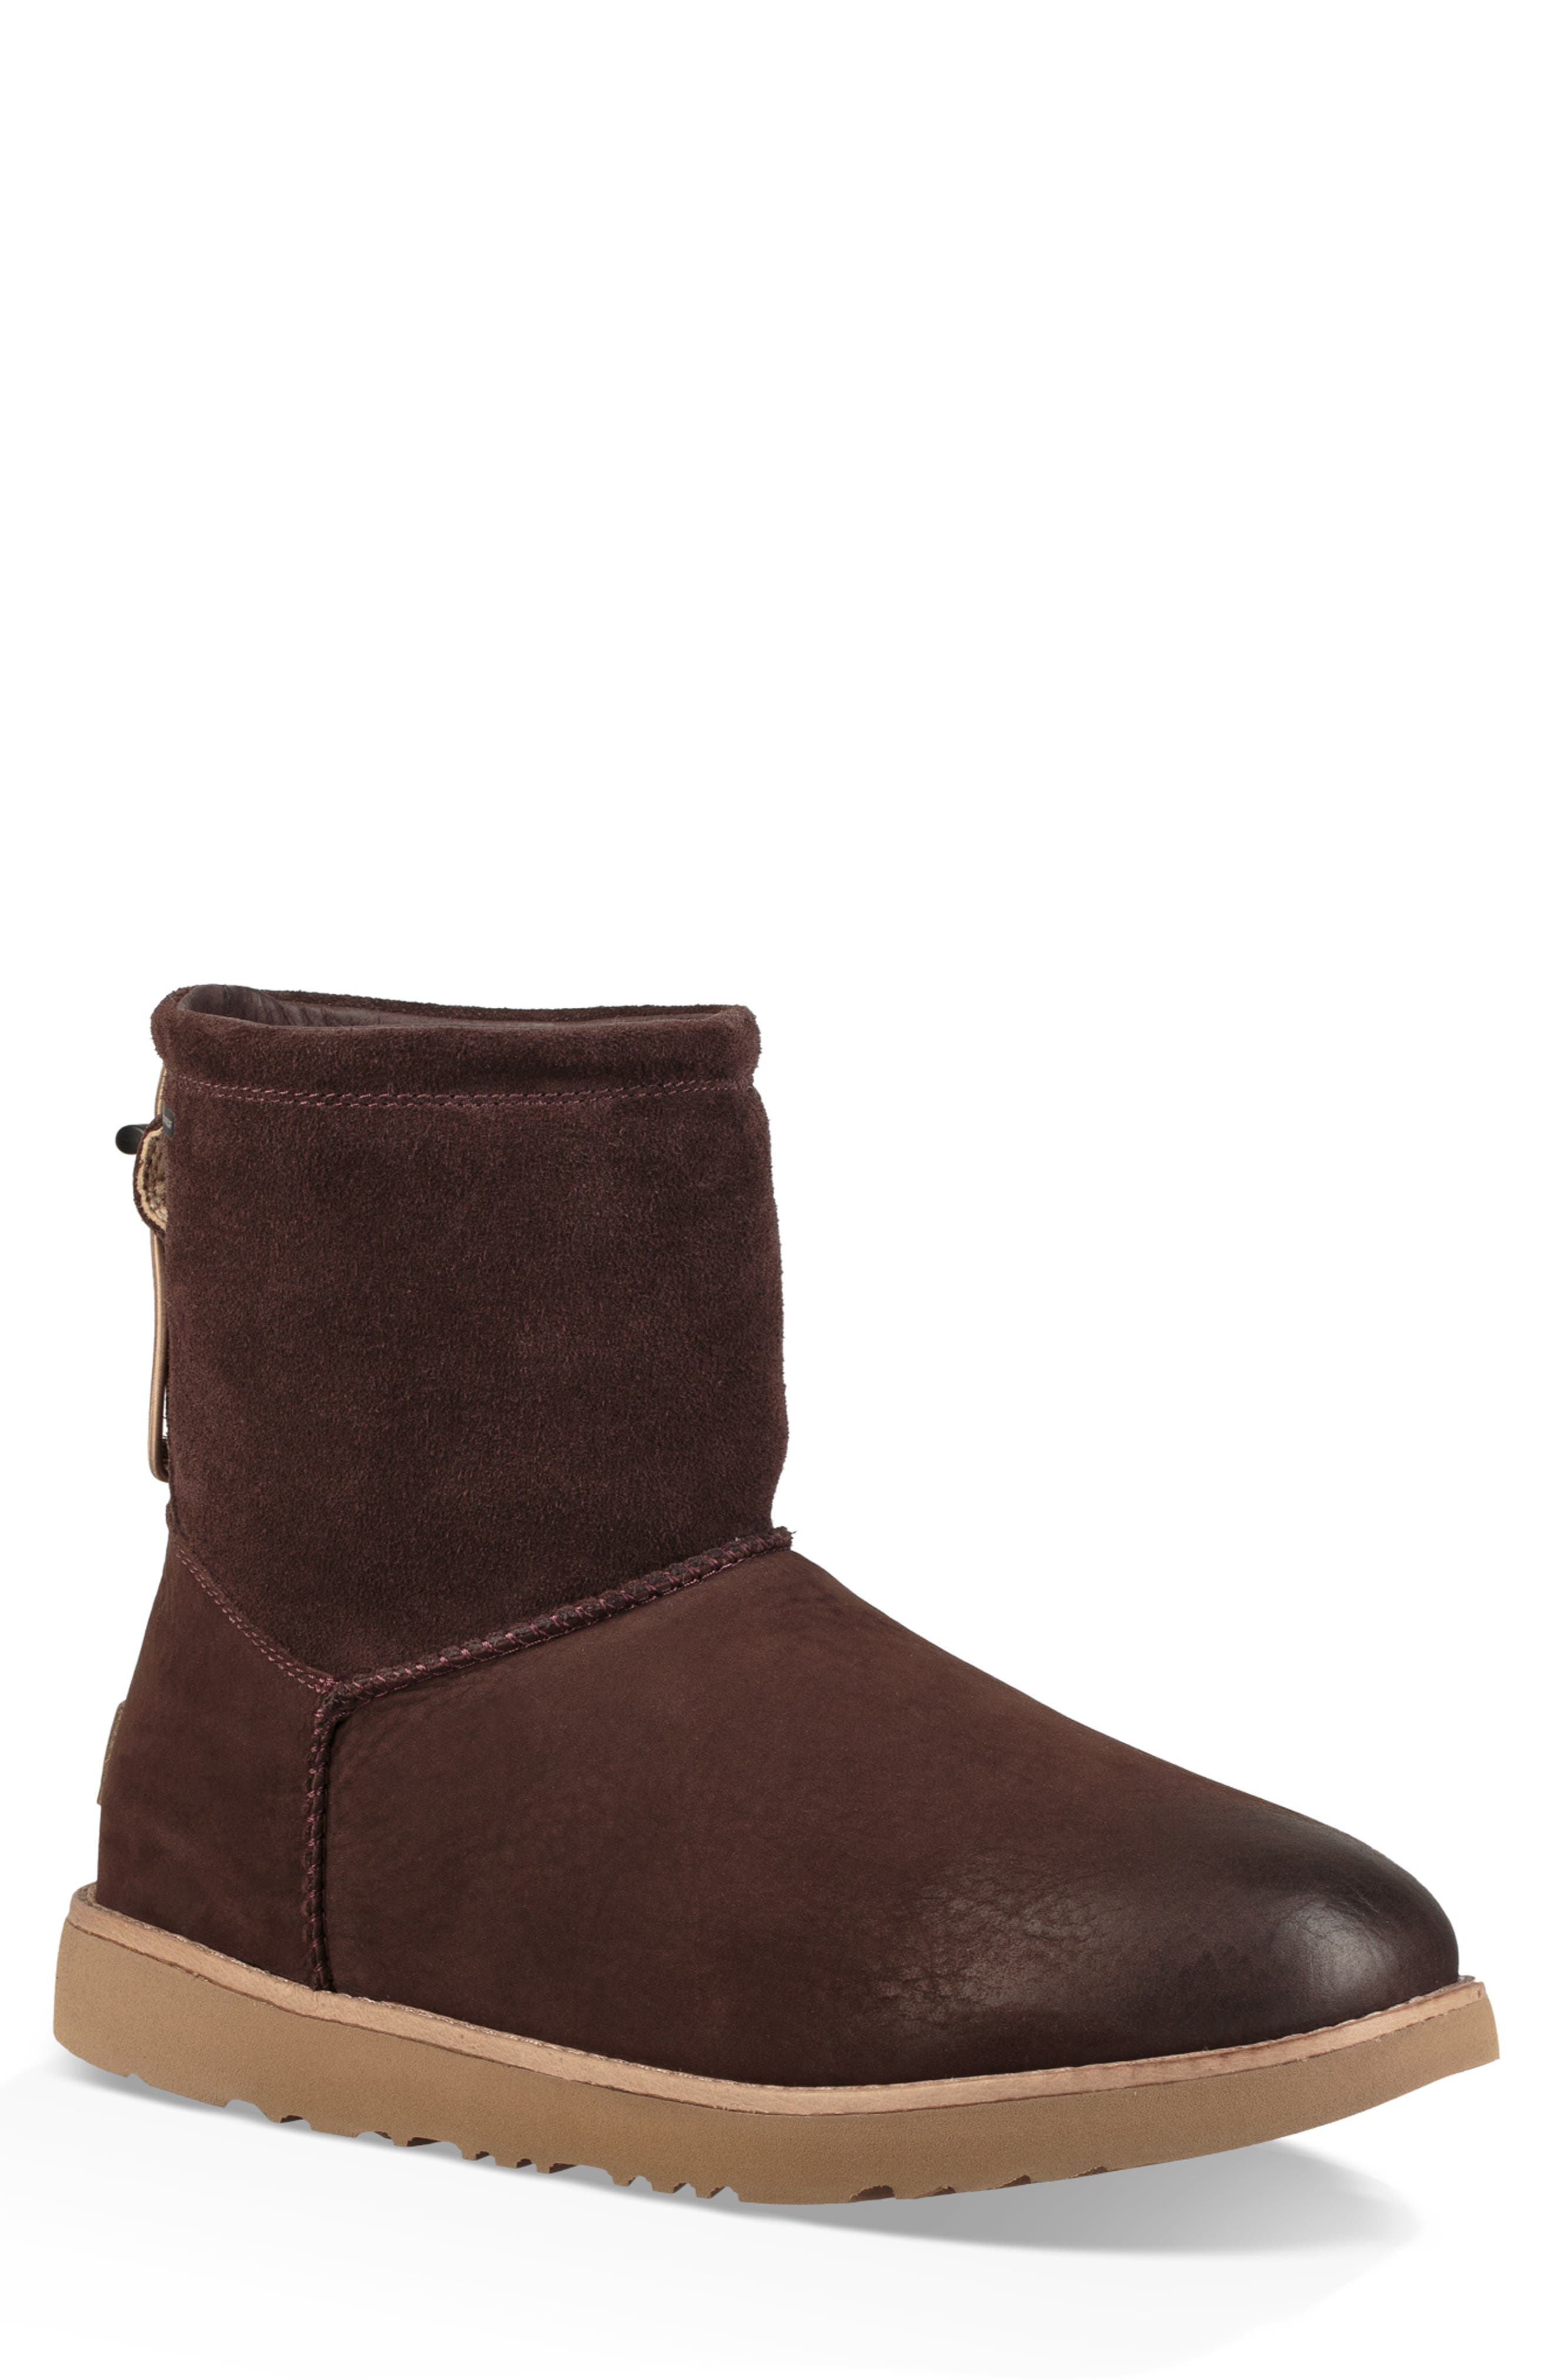 Classic Waterproof Boot,                         Main,                         color, STOUT